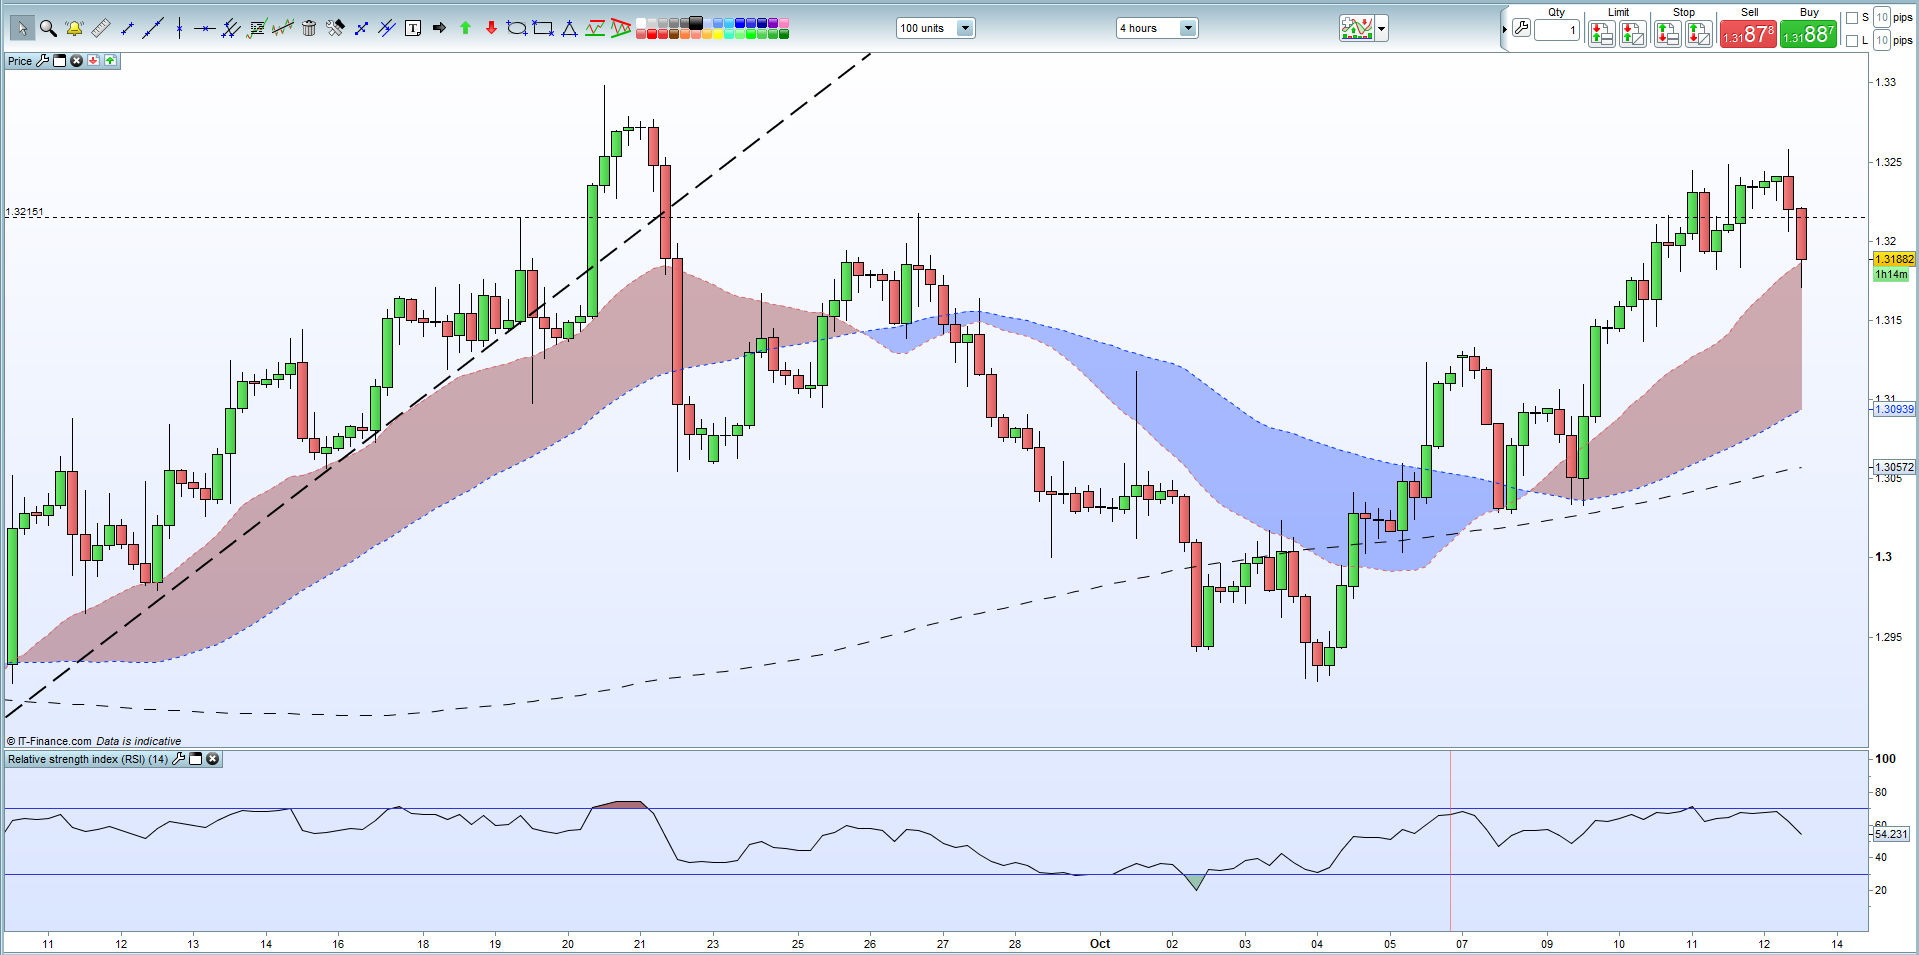 Gbpusd Weekly Technical Outlook Turning Short Term Negative